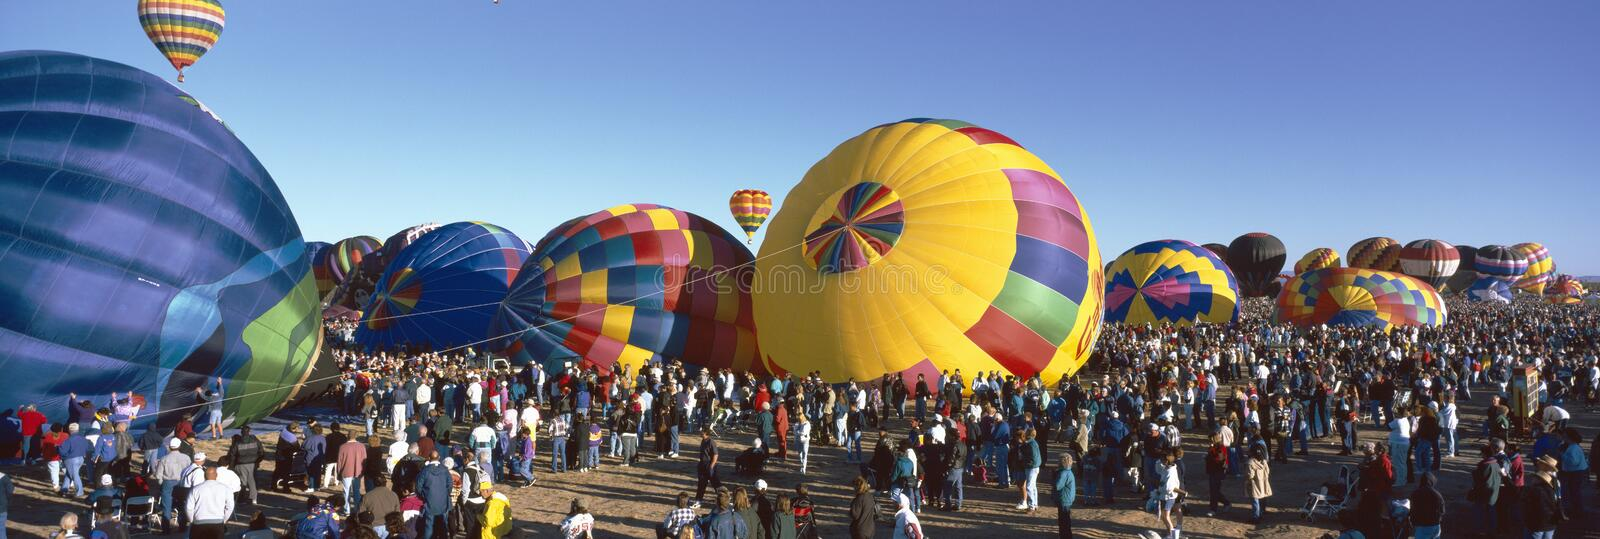 Internationale de Ballonfiesta van 25ste Albuquerque, New Mexico stock foto's